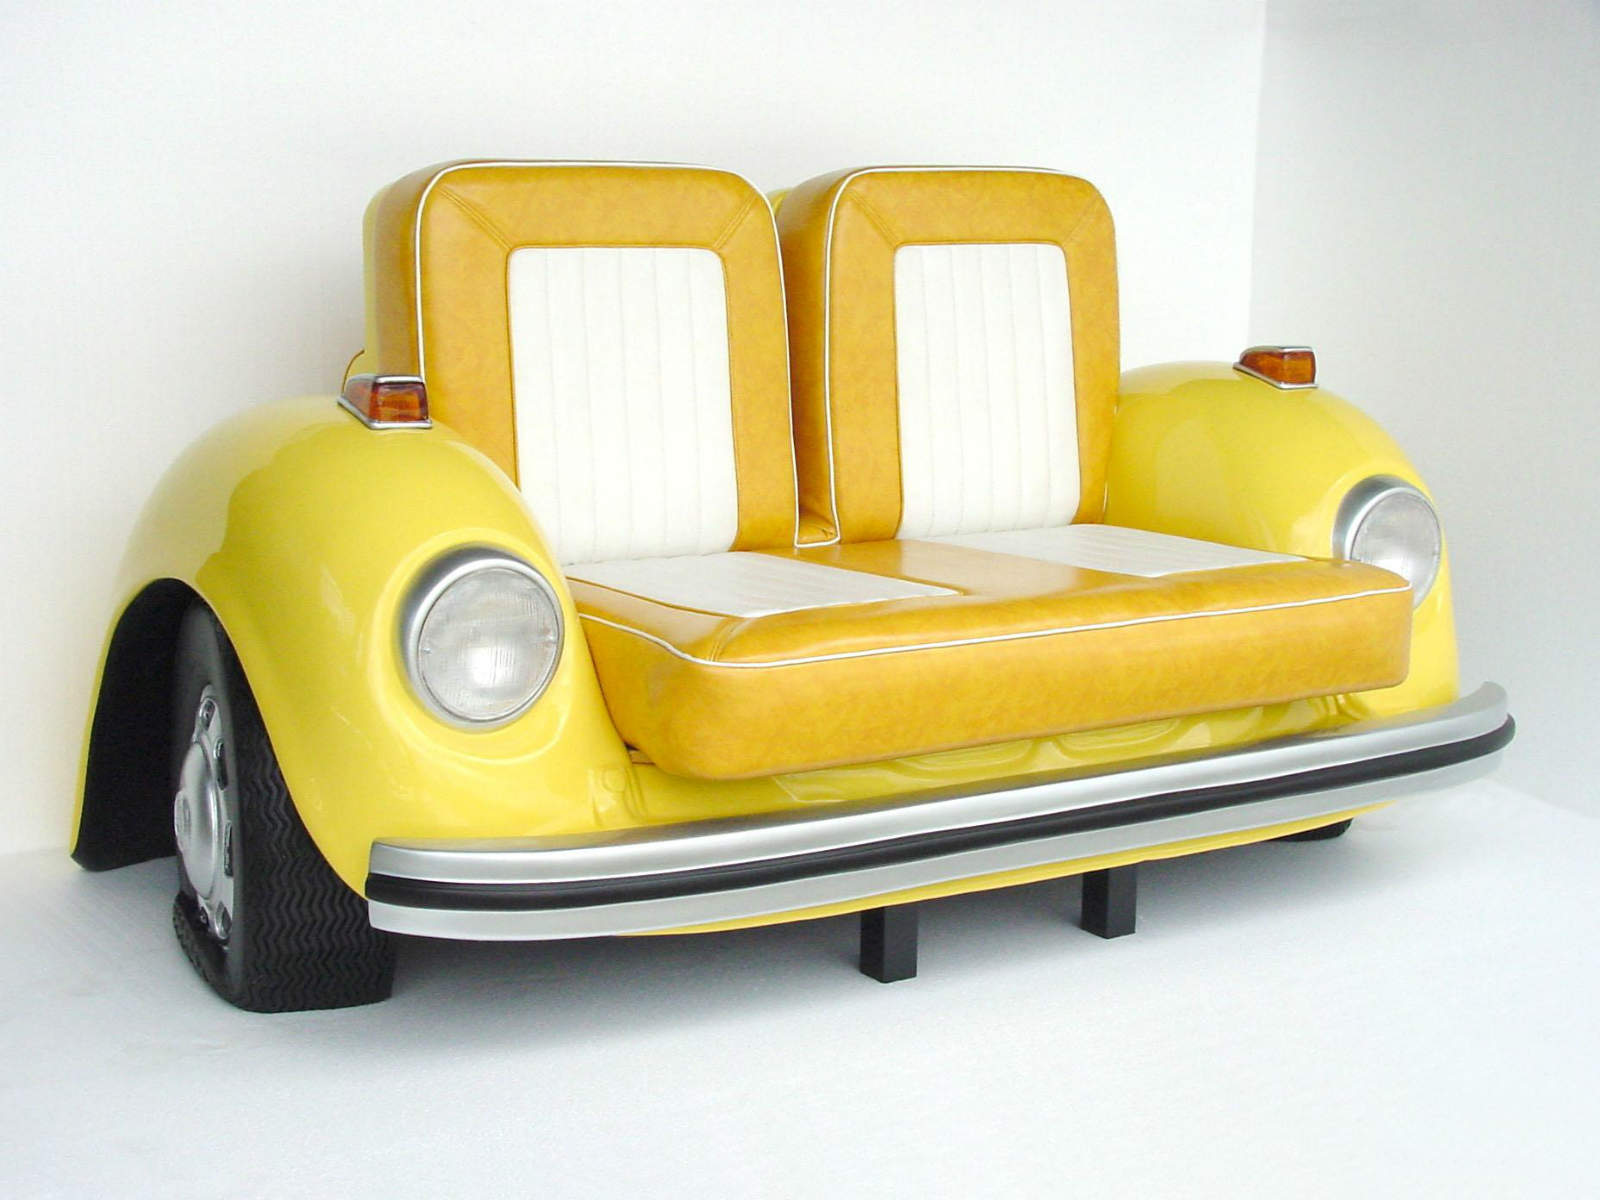 Fun Sofas volswagen-beetle-sofa-0 - no car no fun! muscle cars and power cars! |